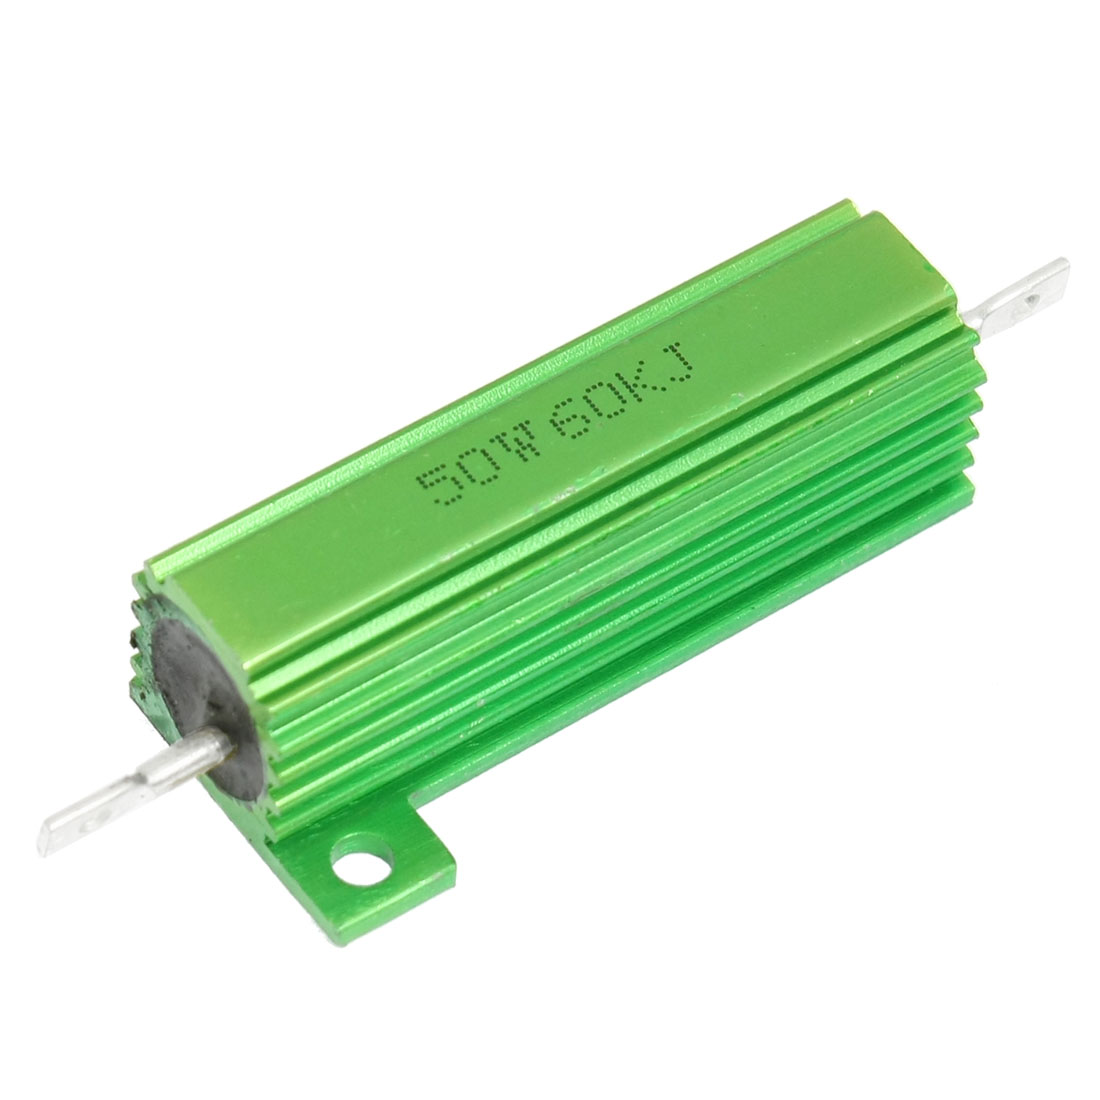 Chassis Mounted 50W 60K Ohm Green Aluminum Wirewound Resistor